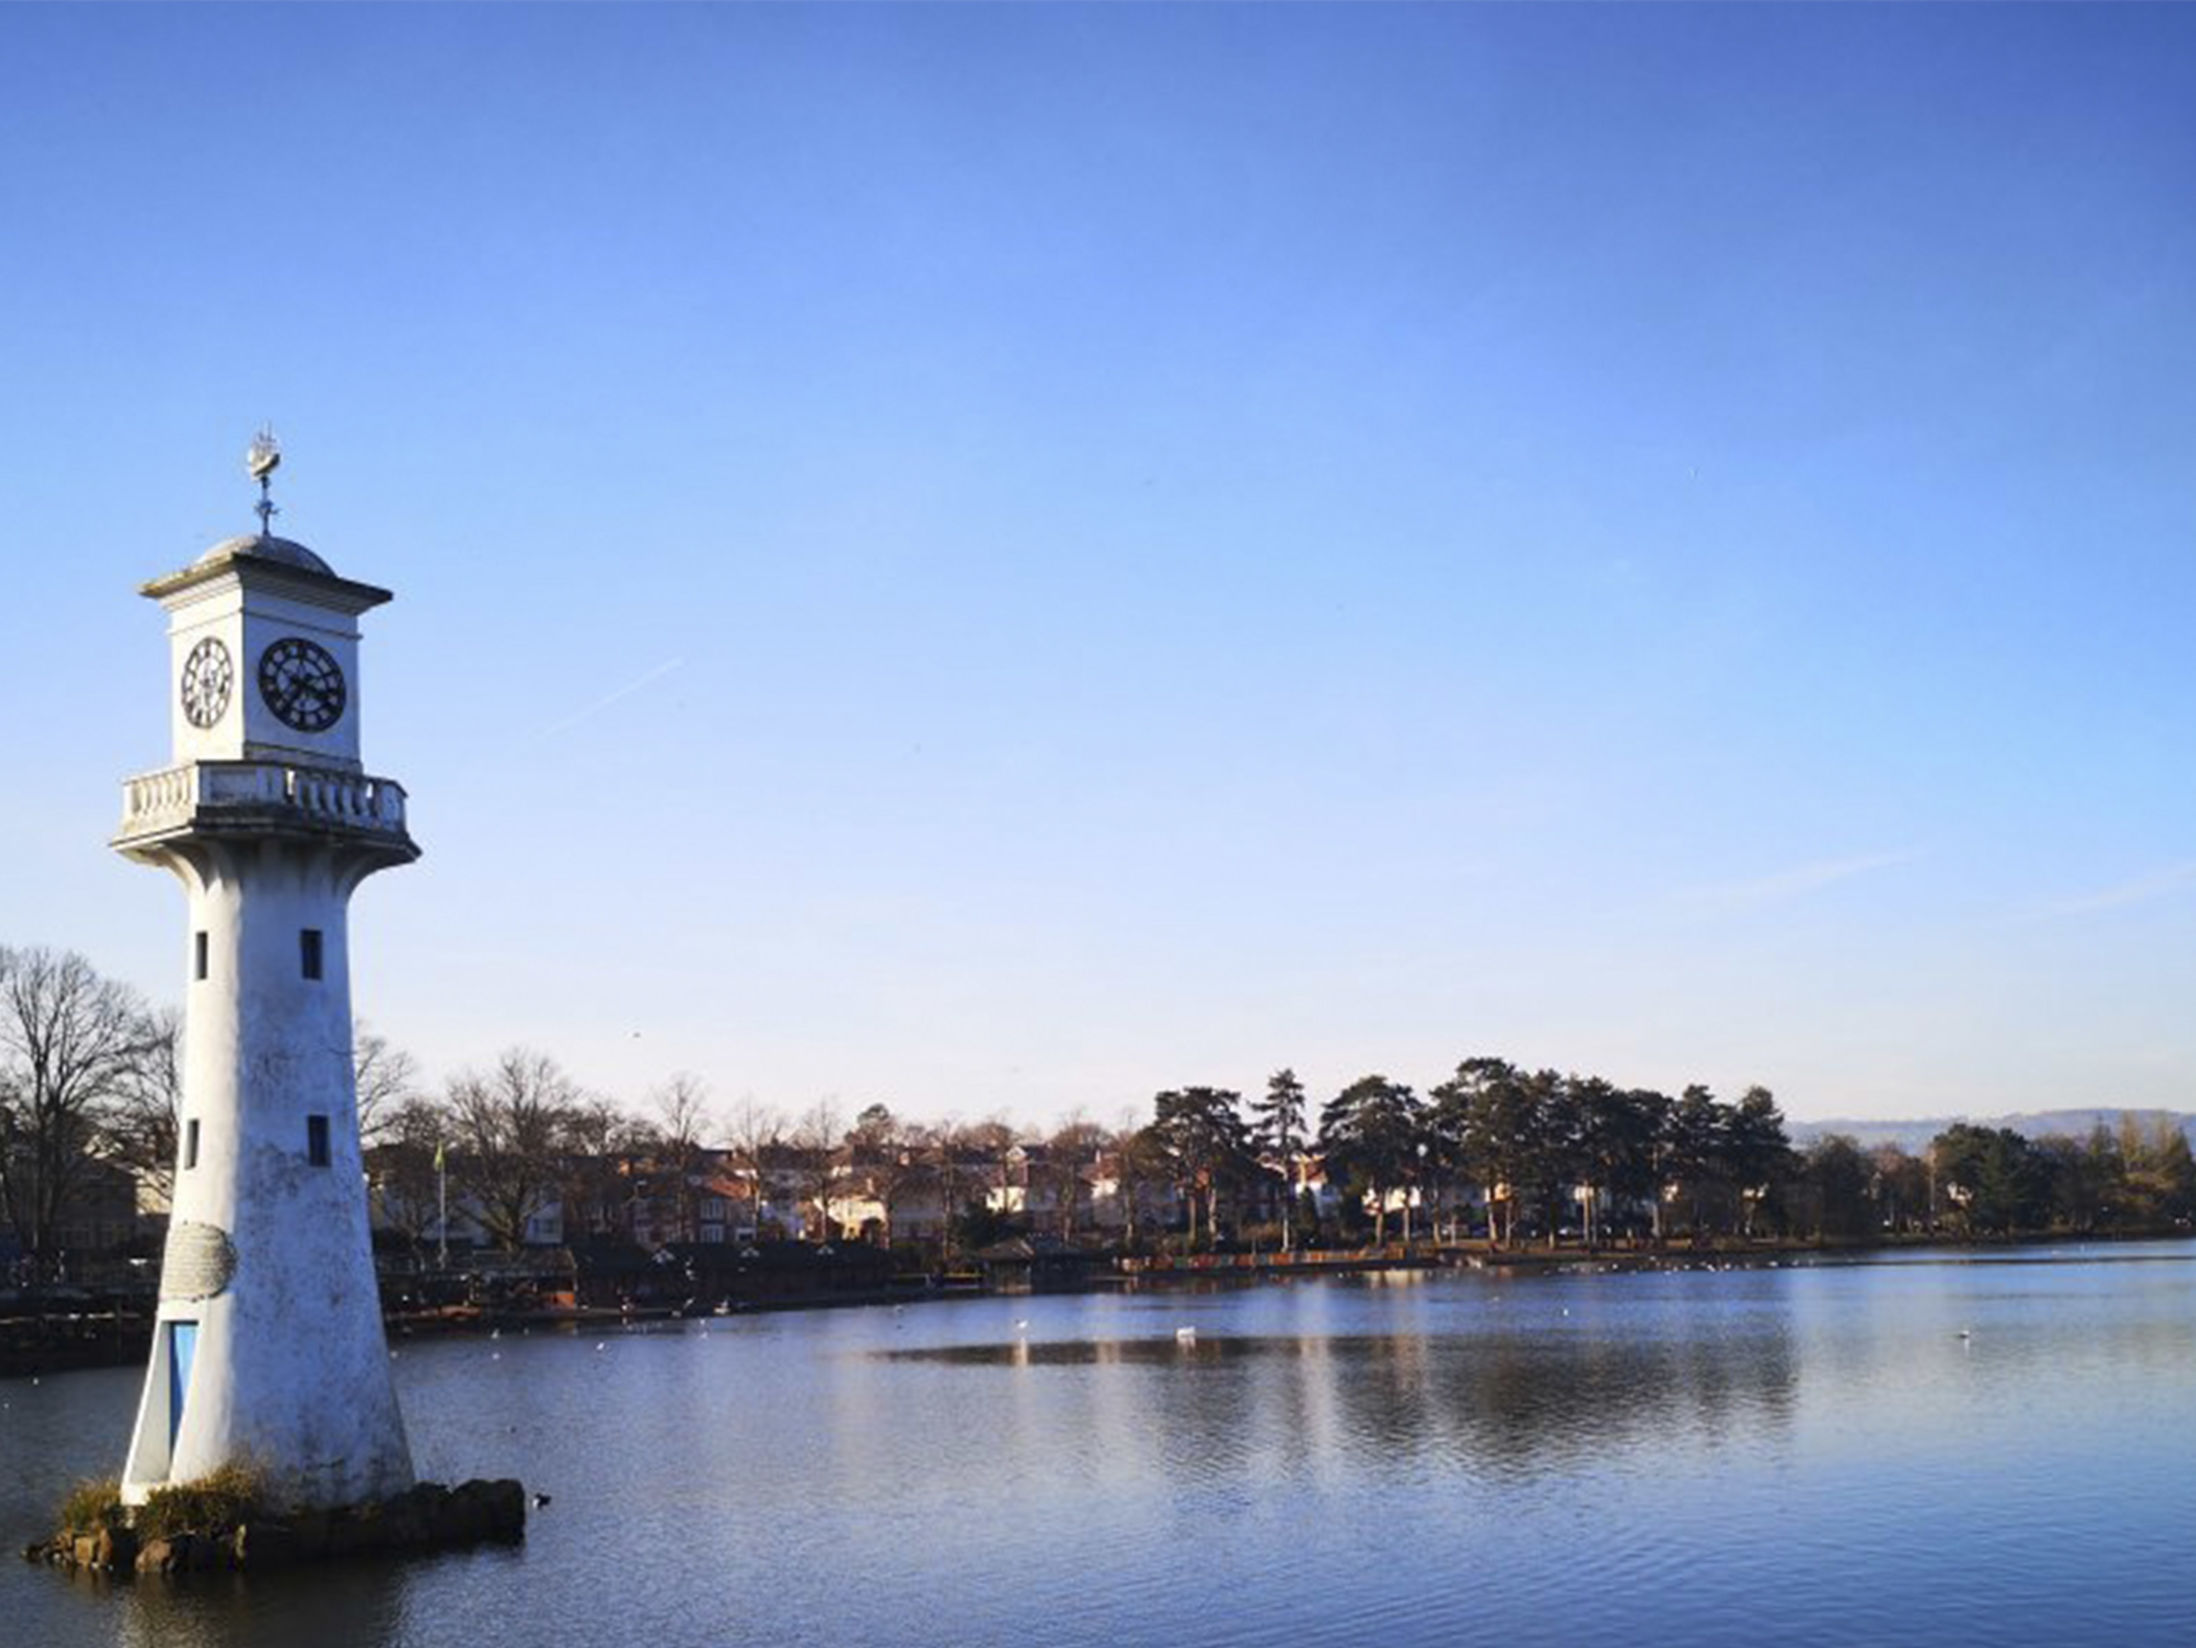 Things to do in Cardiff - Roath Park & Lake